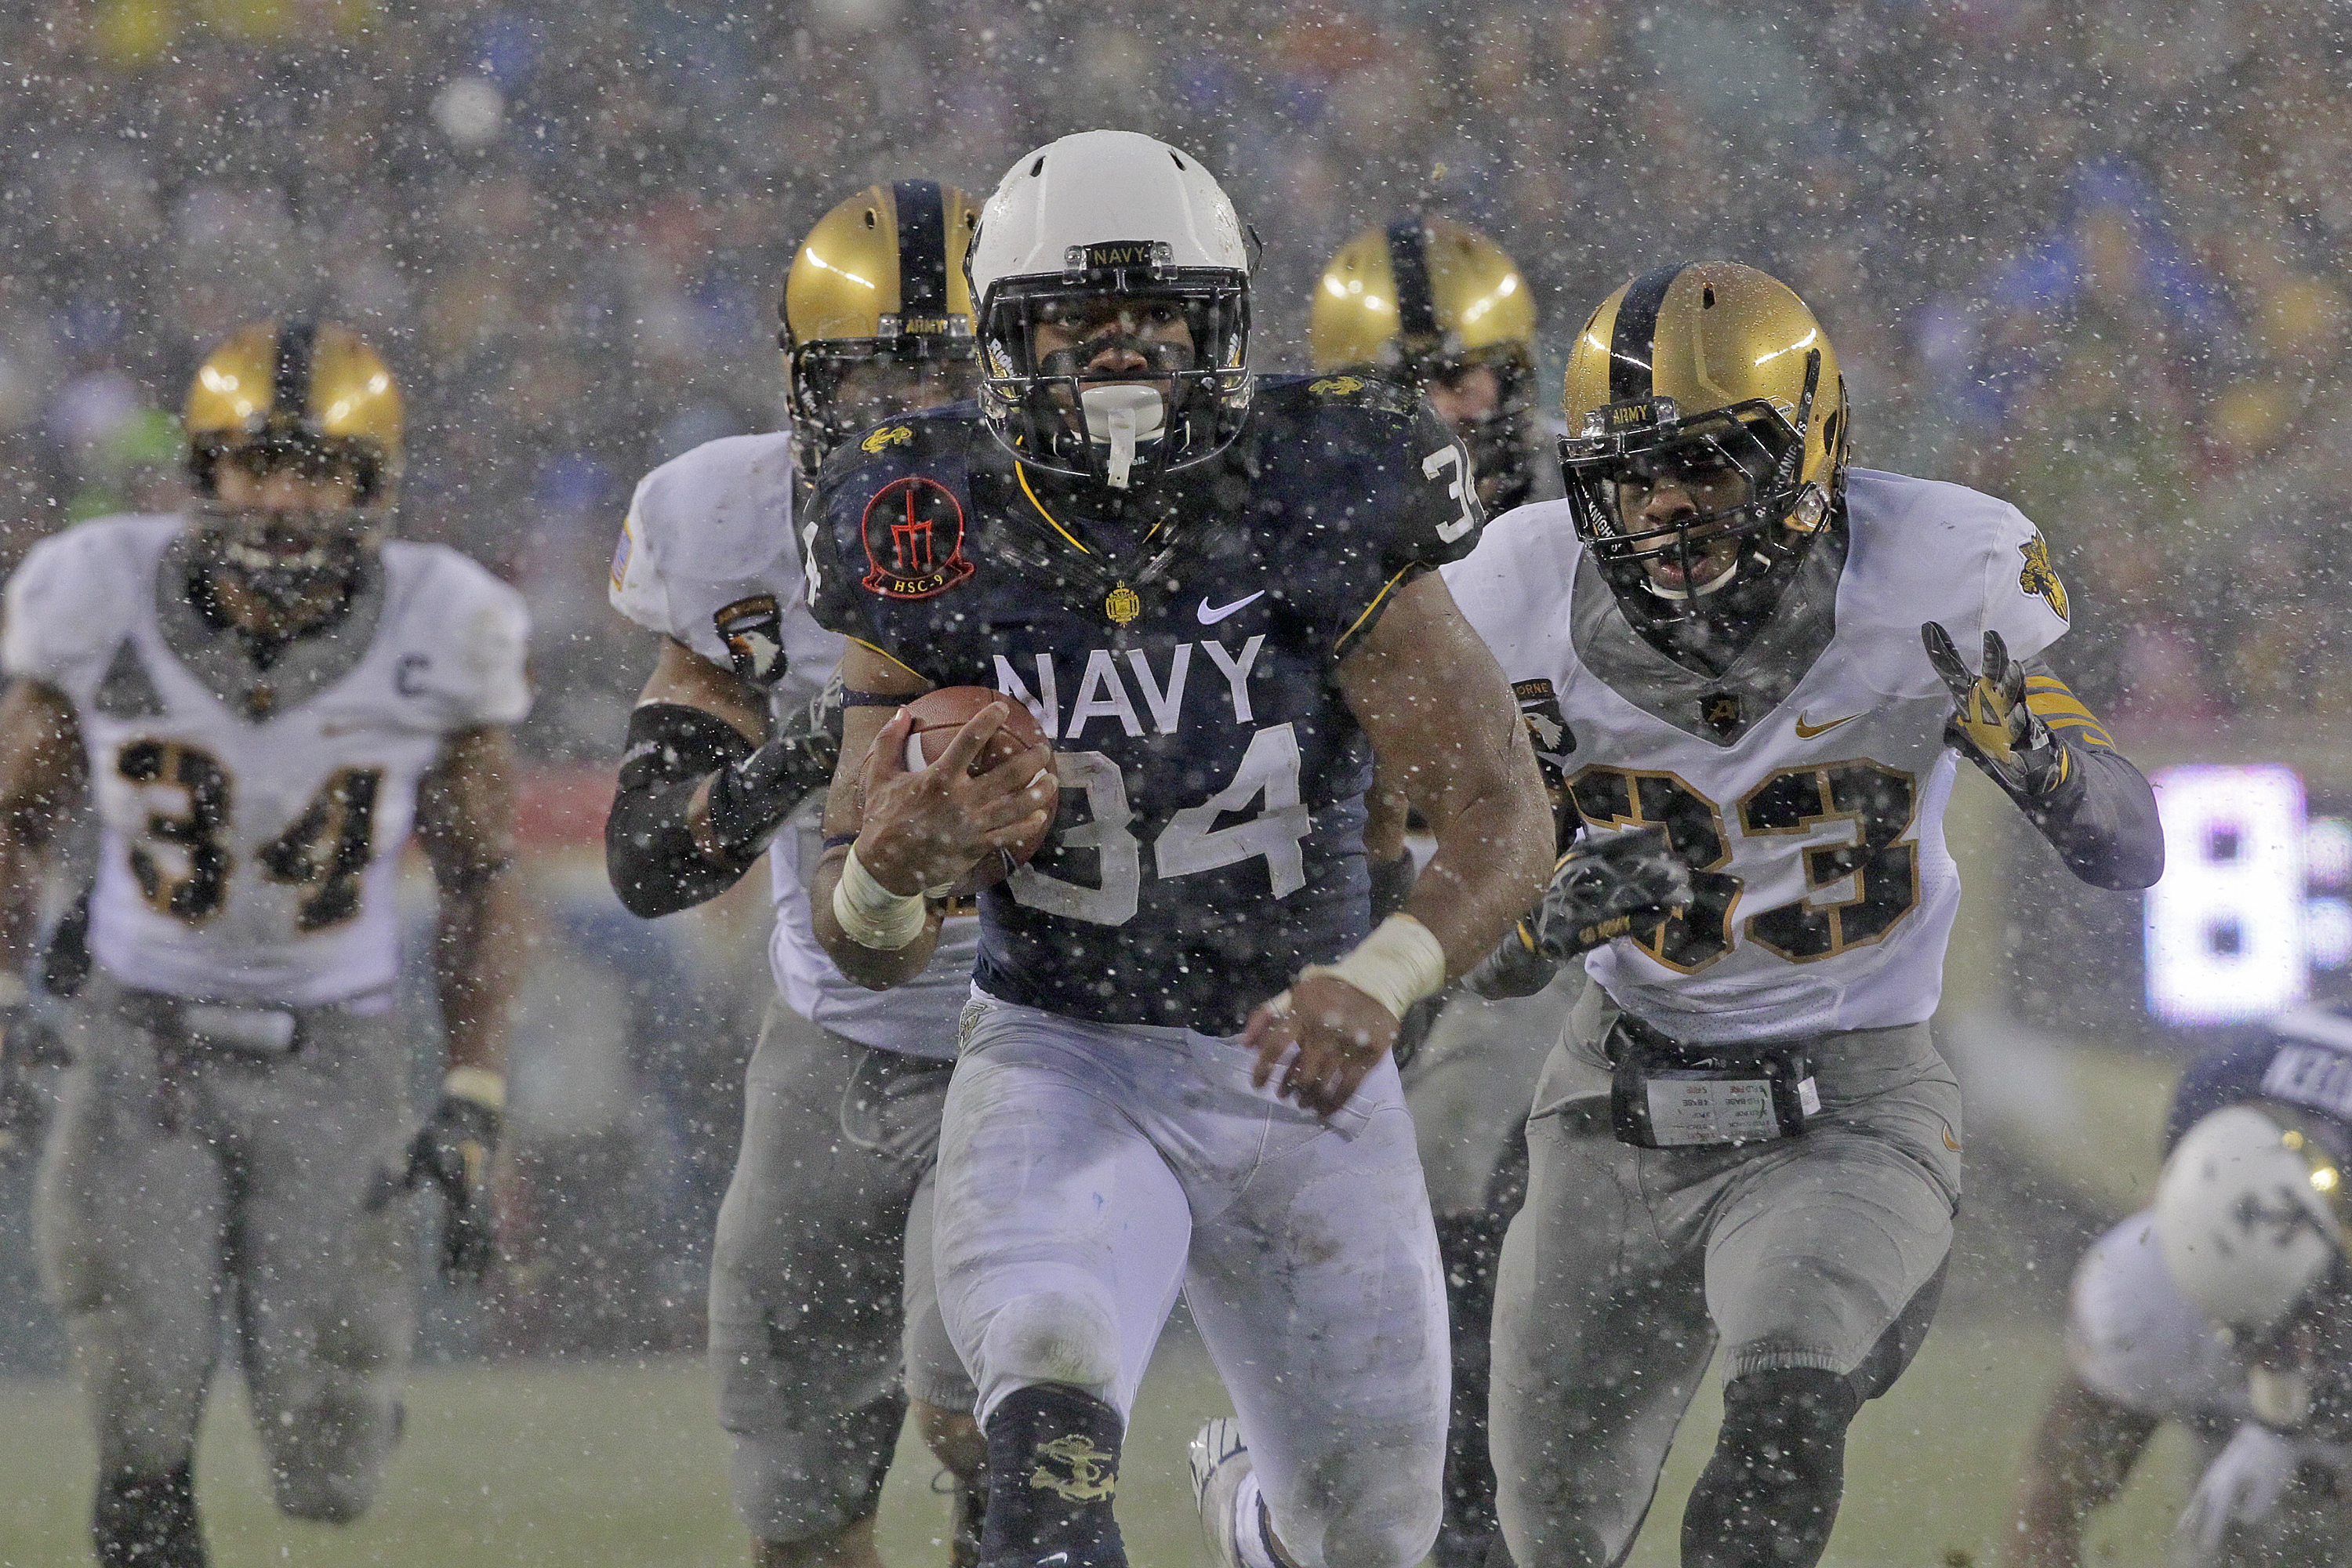 Army beats Navy for 2nd straight year